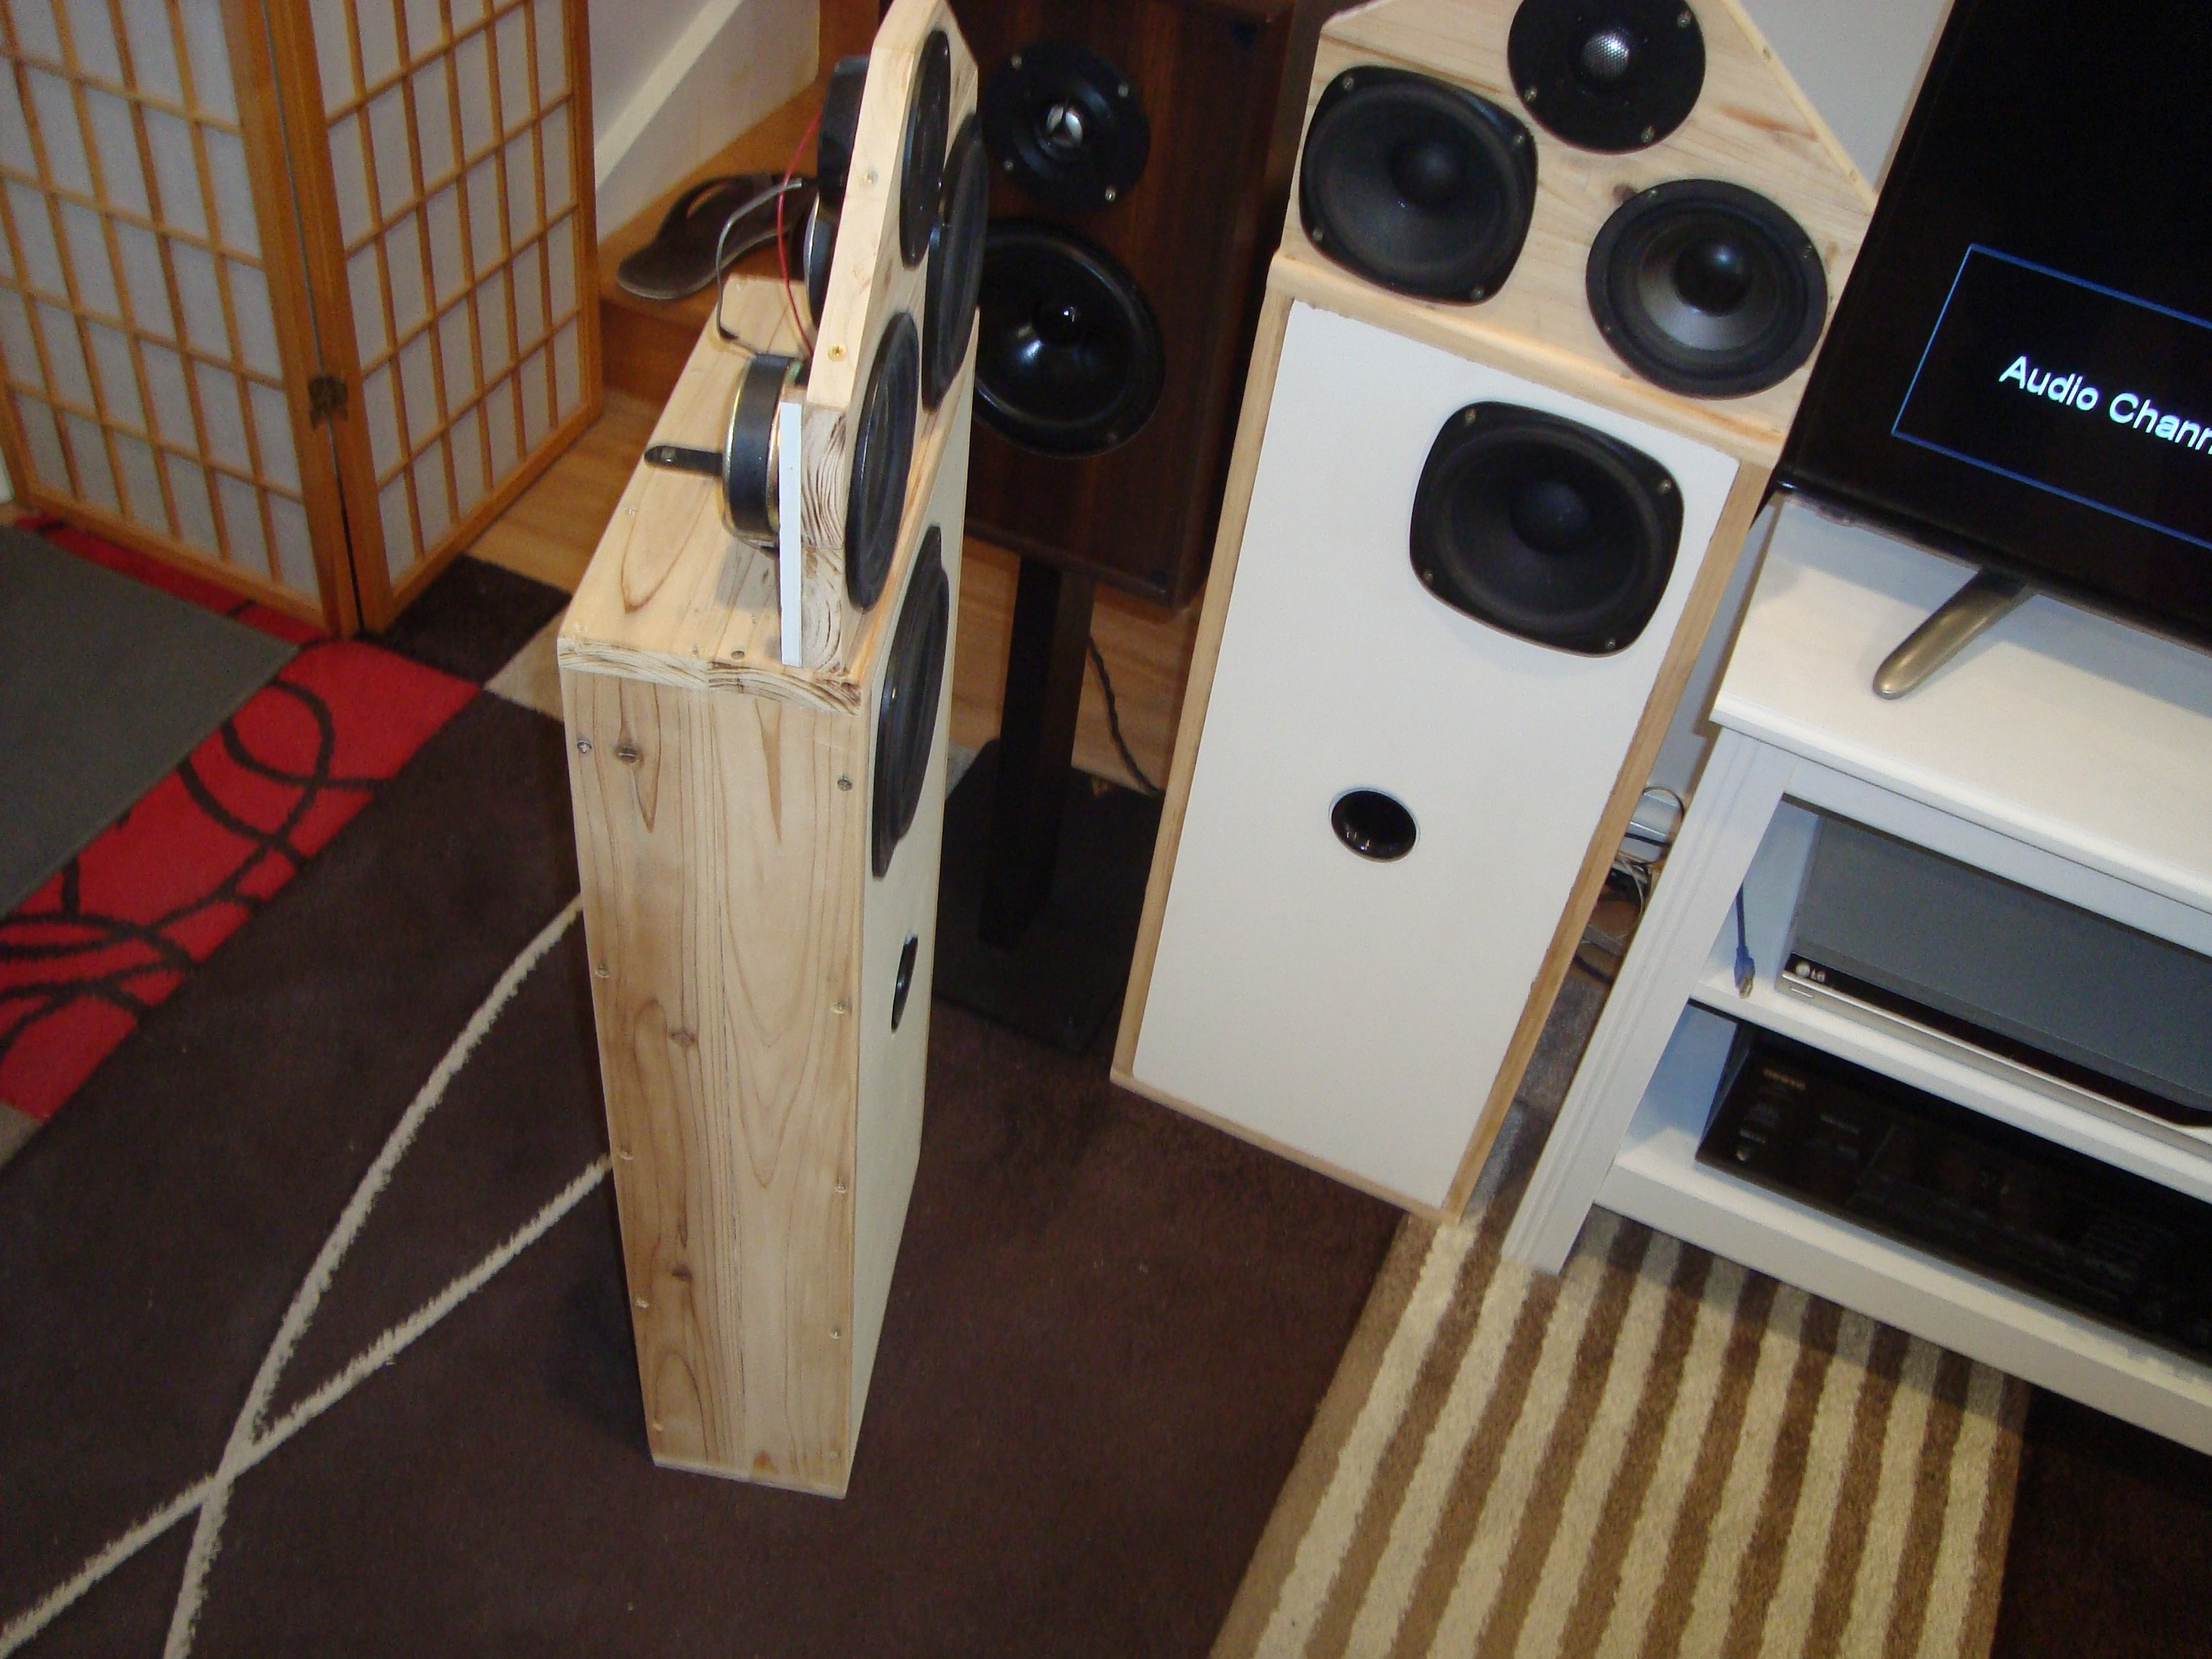 Box speakers with open baffle section SB in the box Sb,AR